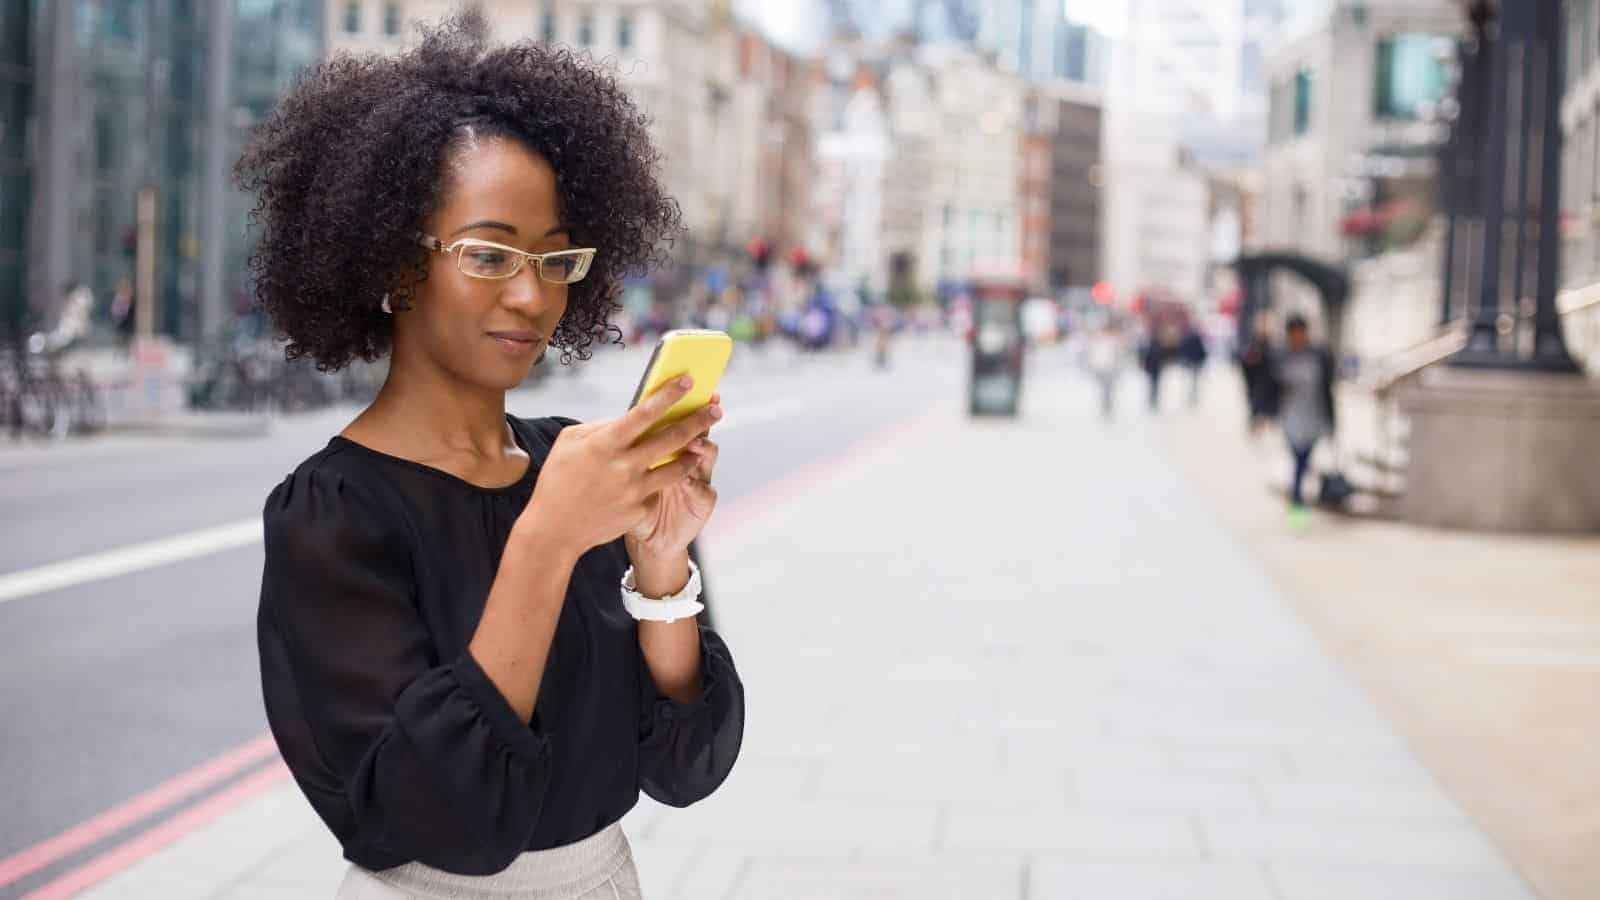 20 Text Messages to Send to Strengthen Your Relationship | 6 Min. Read